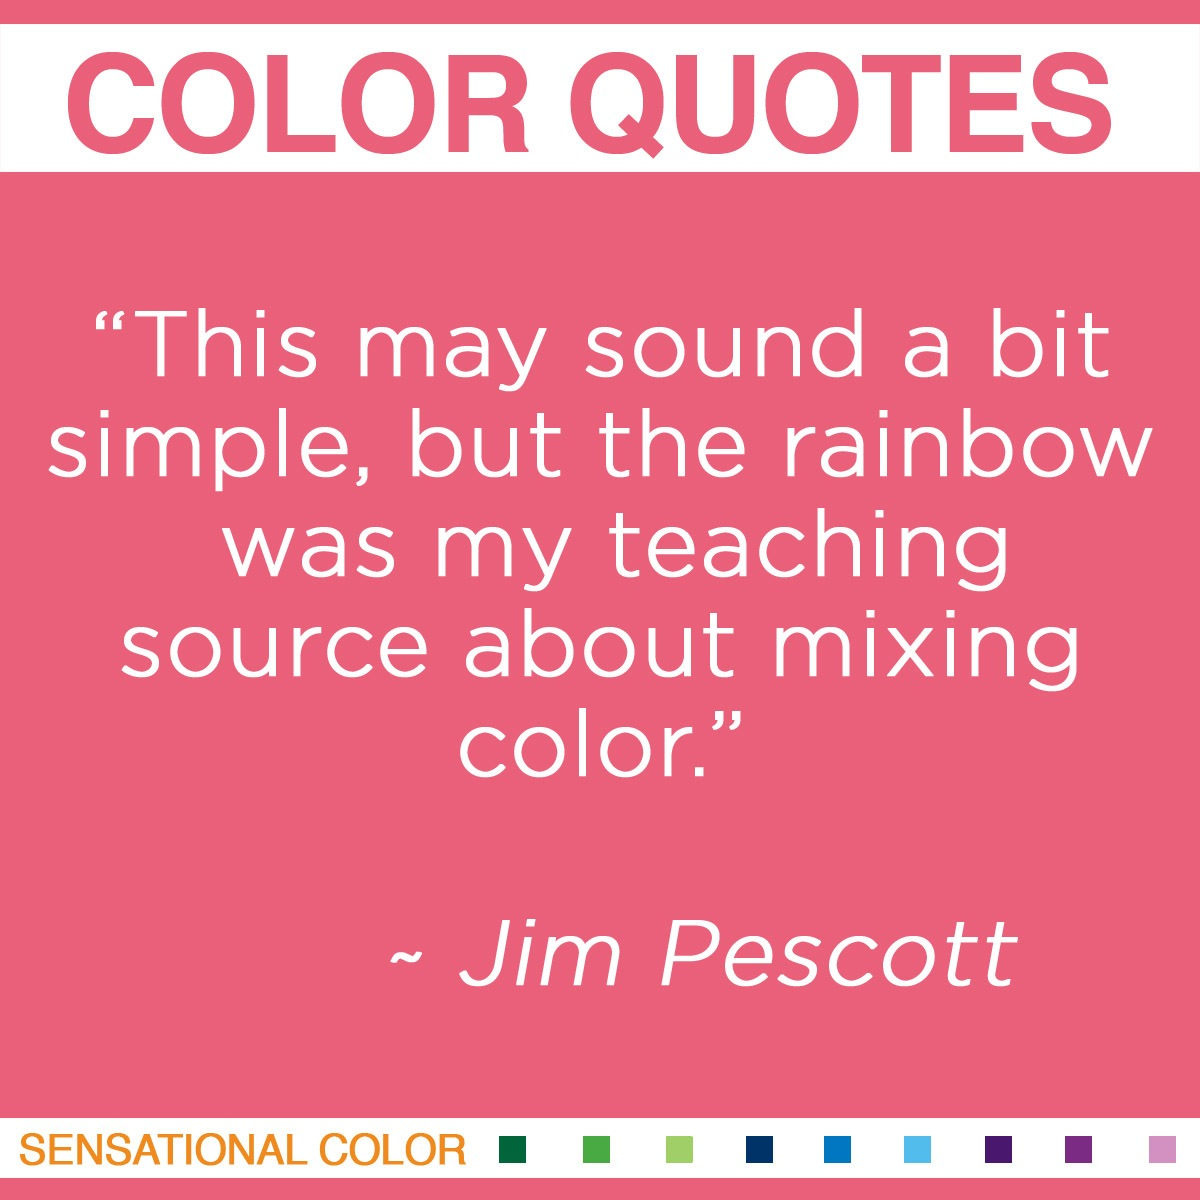 """This may sound a bit simple, but the rainbow was my teaching source about mixing color."" - Jim Pescott"